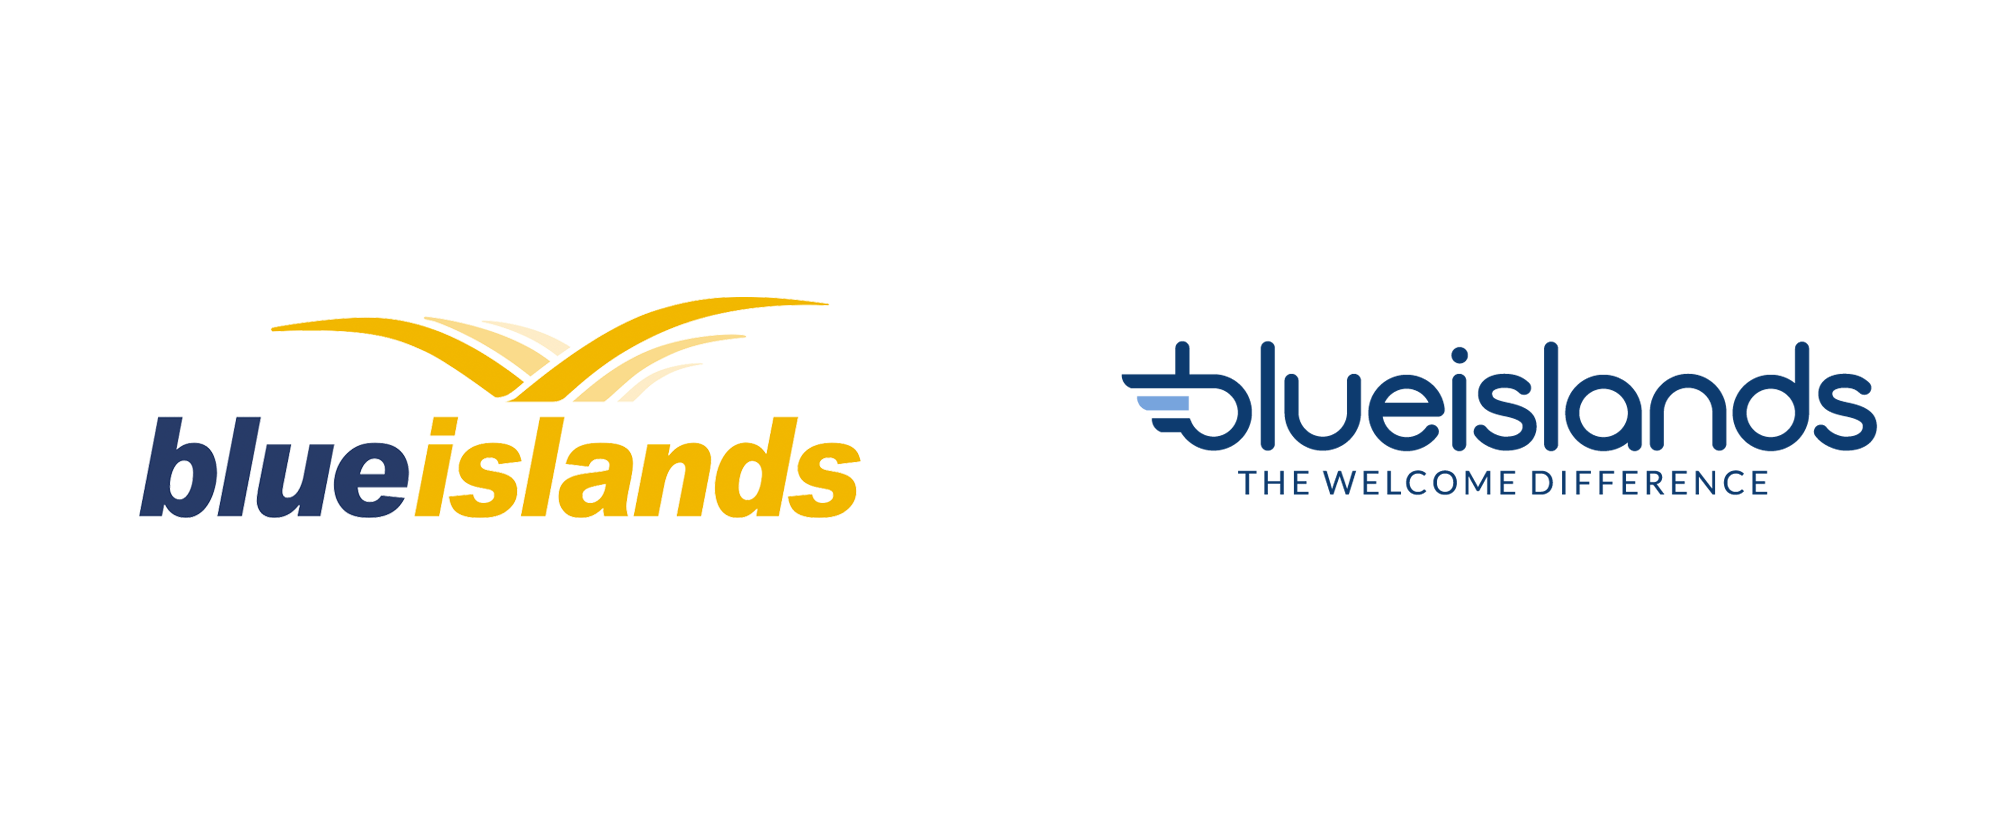 New Logo for Blue Islands